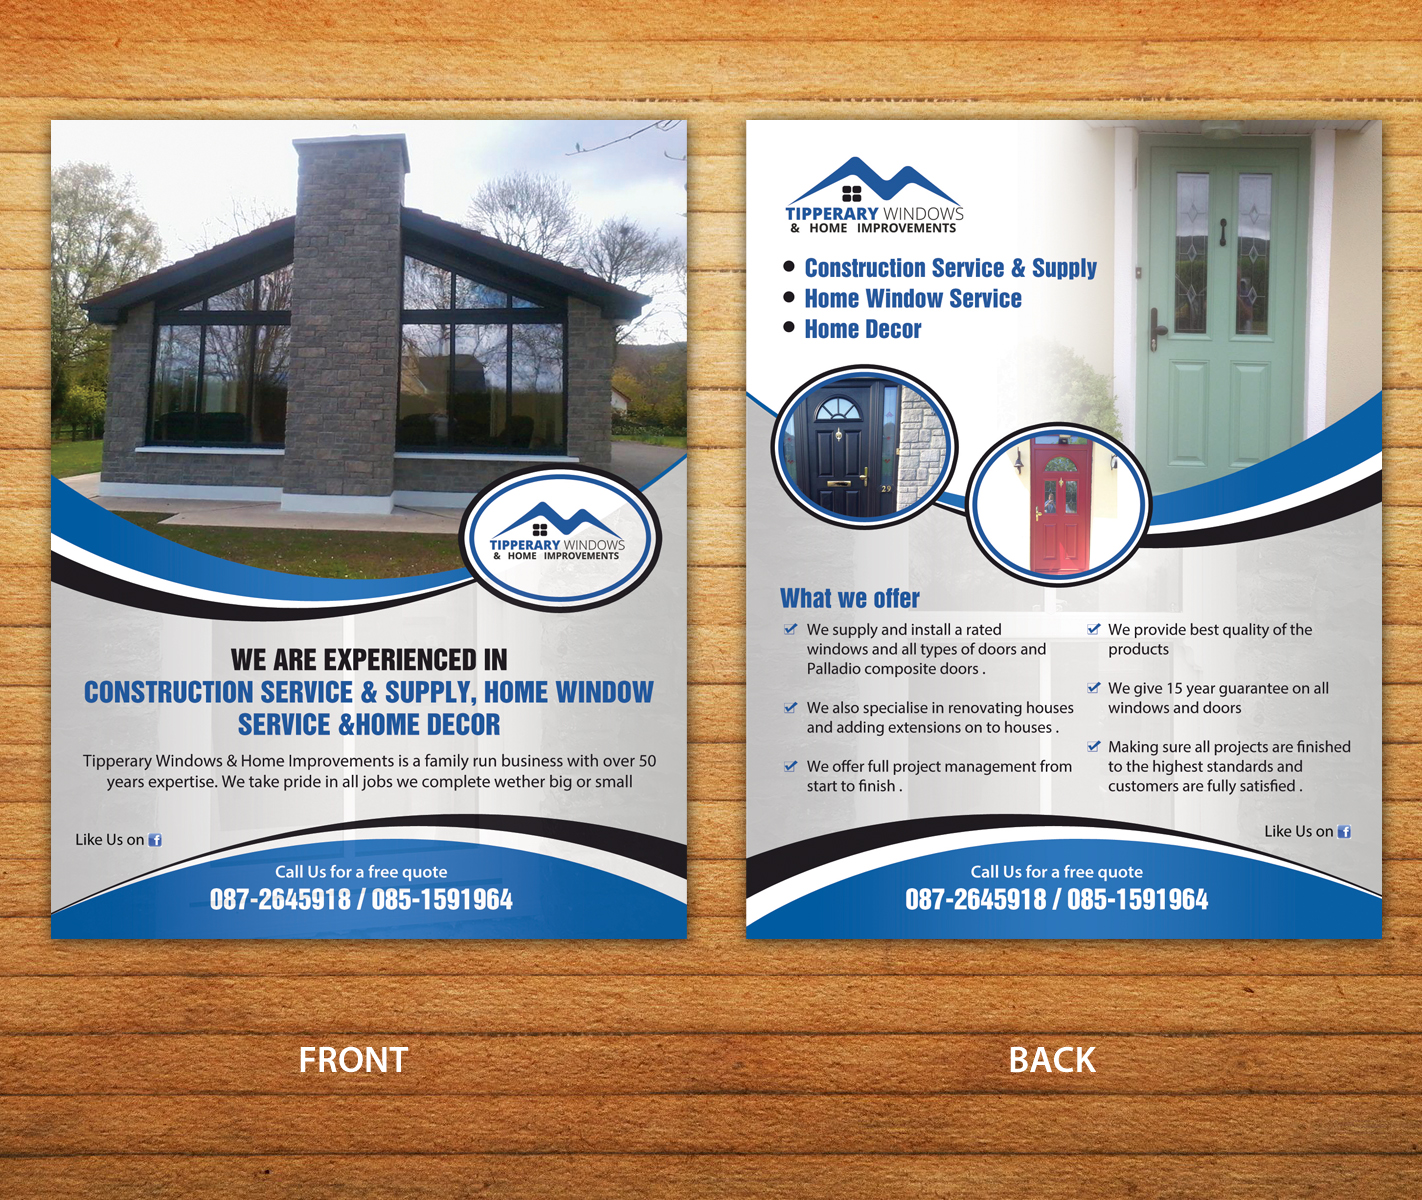 Business Flyer Design For Tipperary Windows Home Improvements By